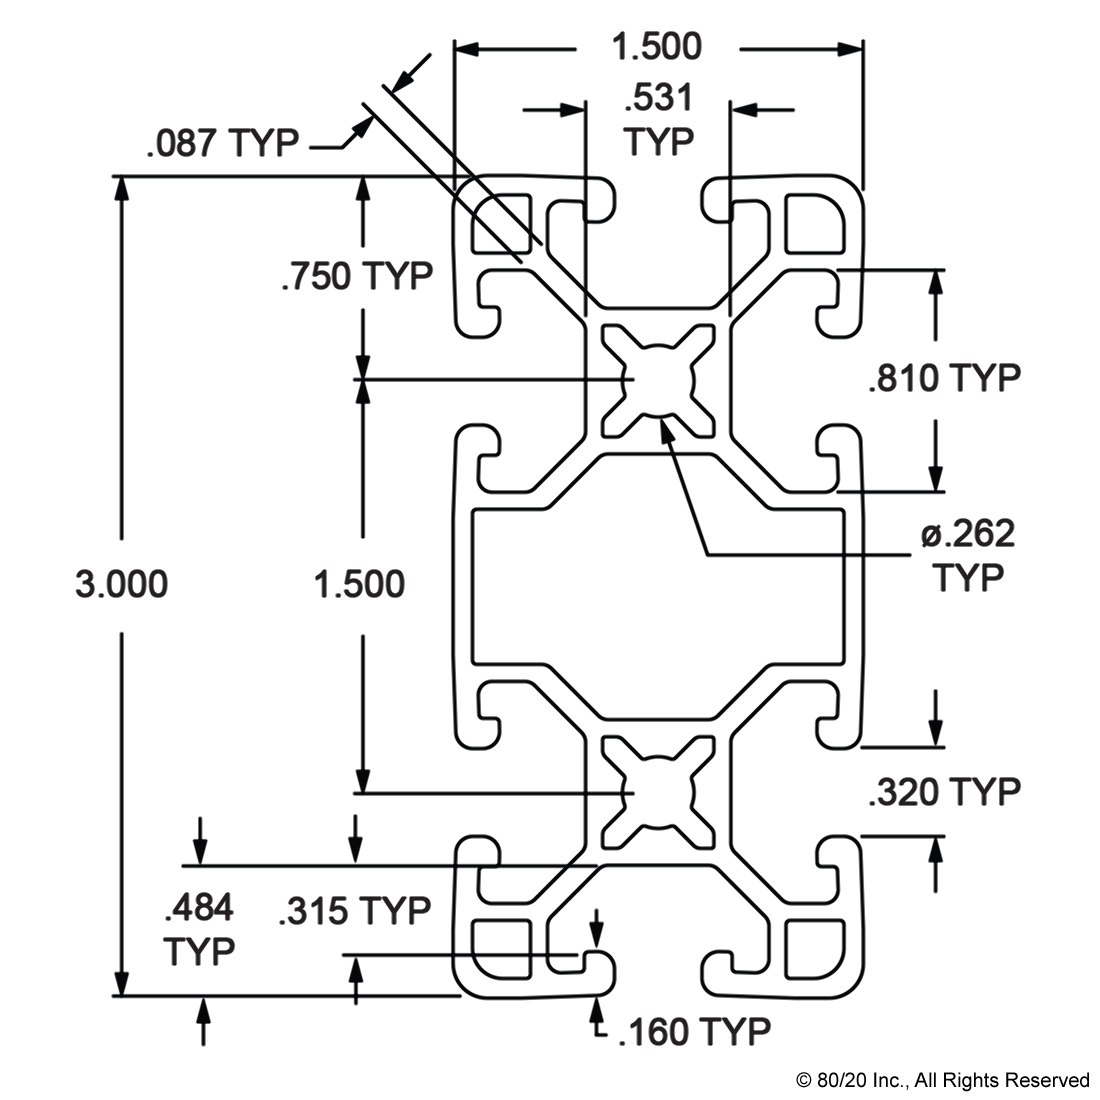 Wiring diagram for ju5 tube